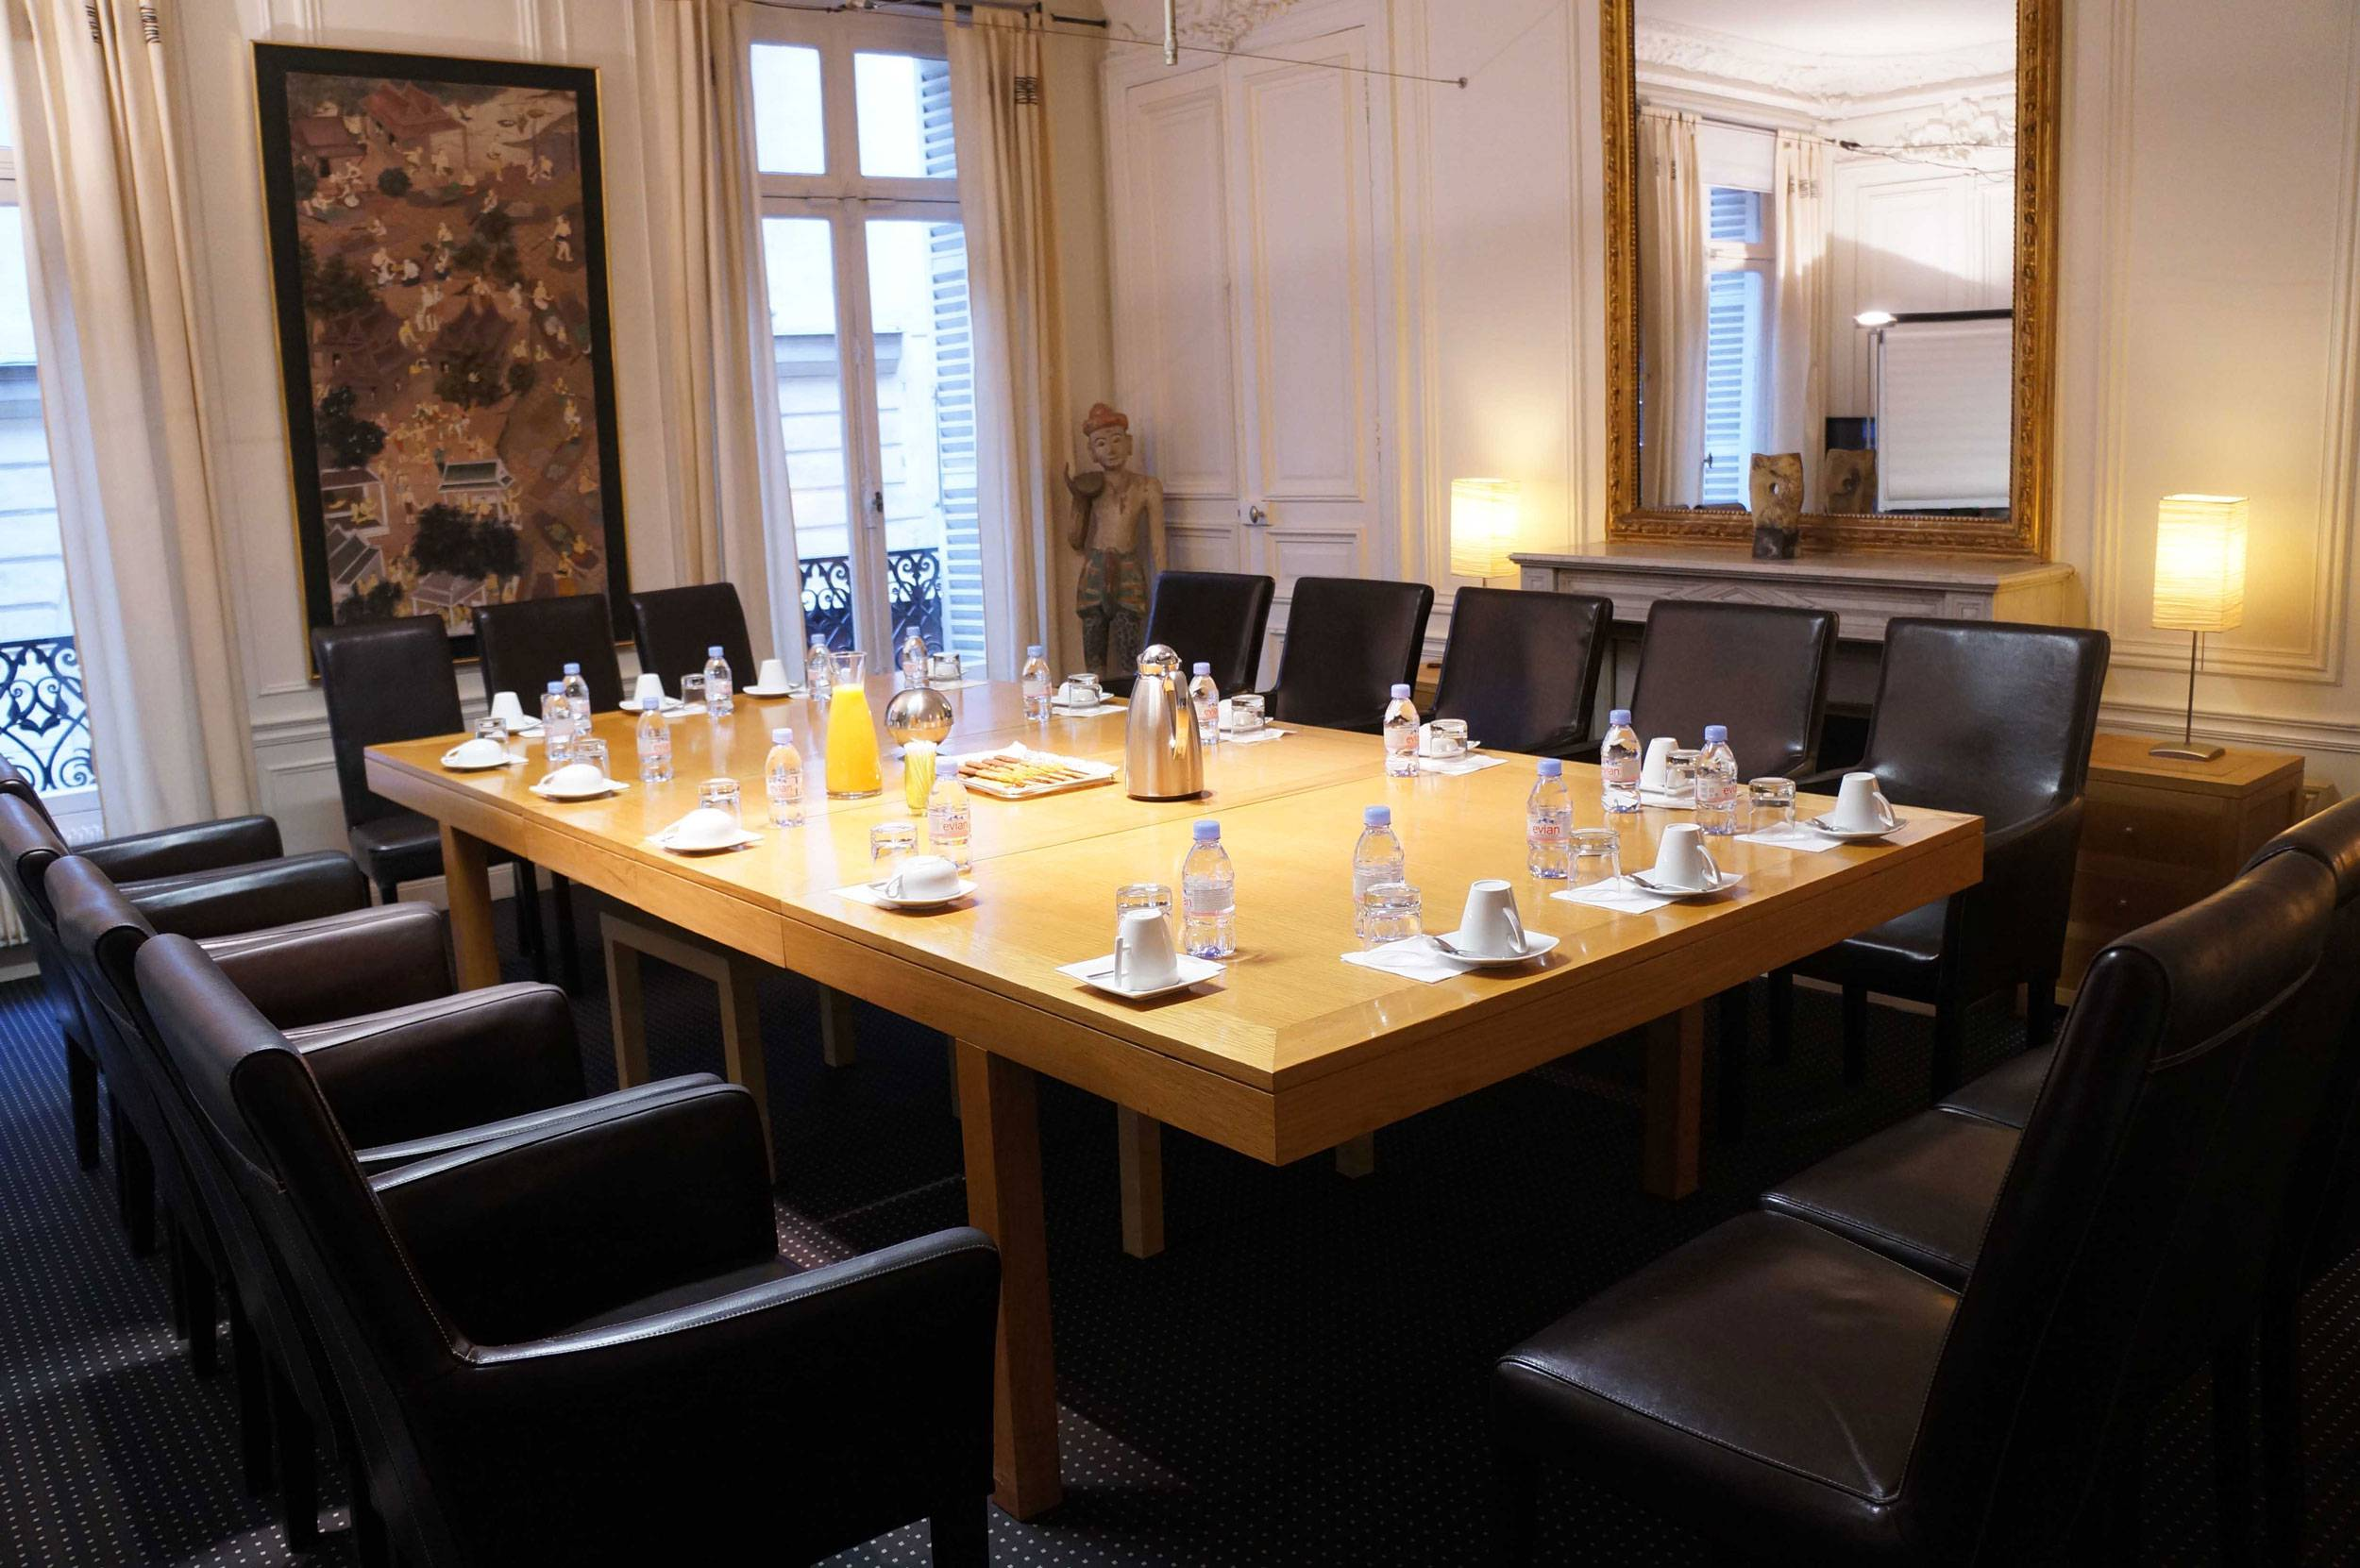 location salle de r union pour 8 personnes dans le centre de paris proche du louvre. Black Bedroom Furniture Sets. Home Design Ideas